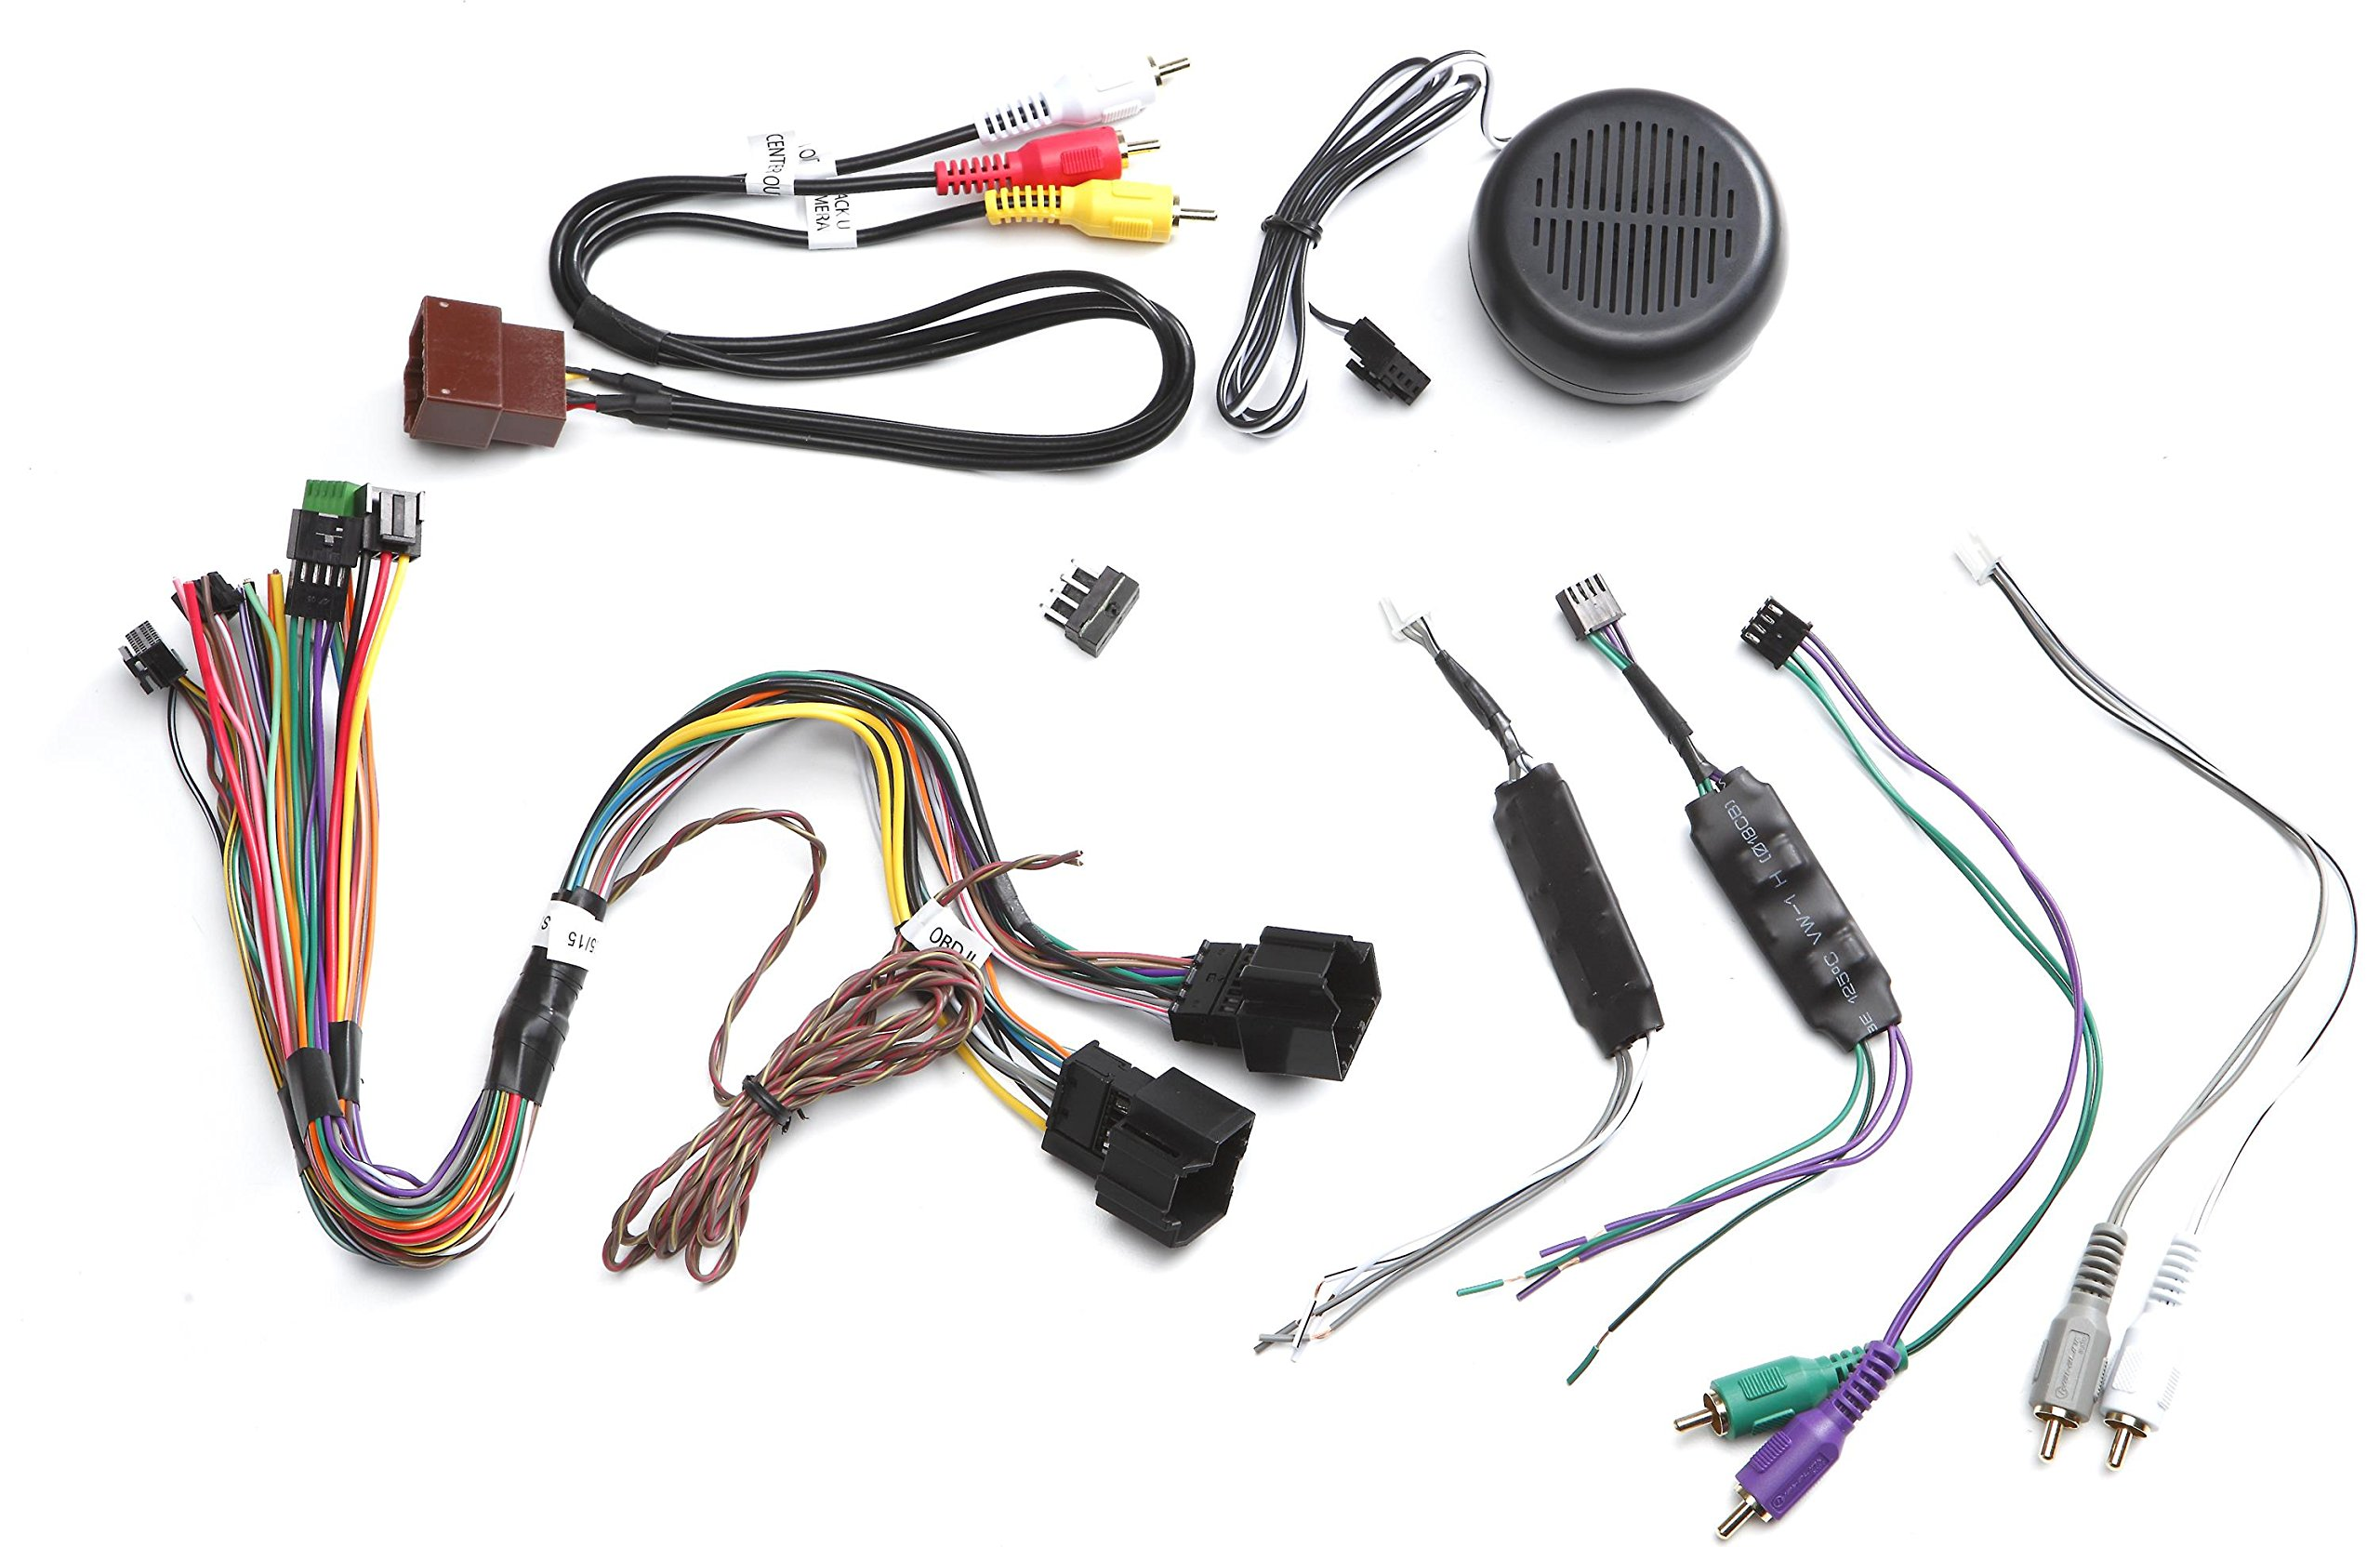 Maestro HRN-RR-GM5 Plug and Play T-Harness for GM5 Vehicles, with Speaker by Maestro